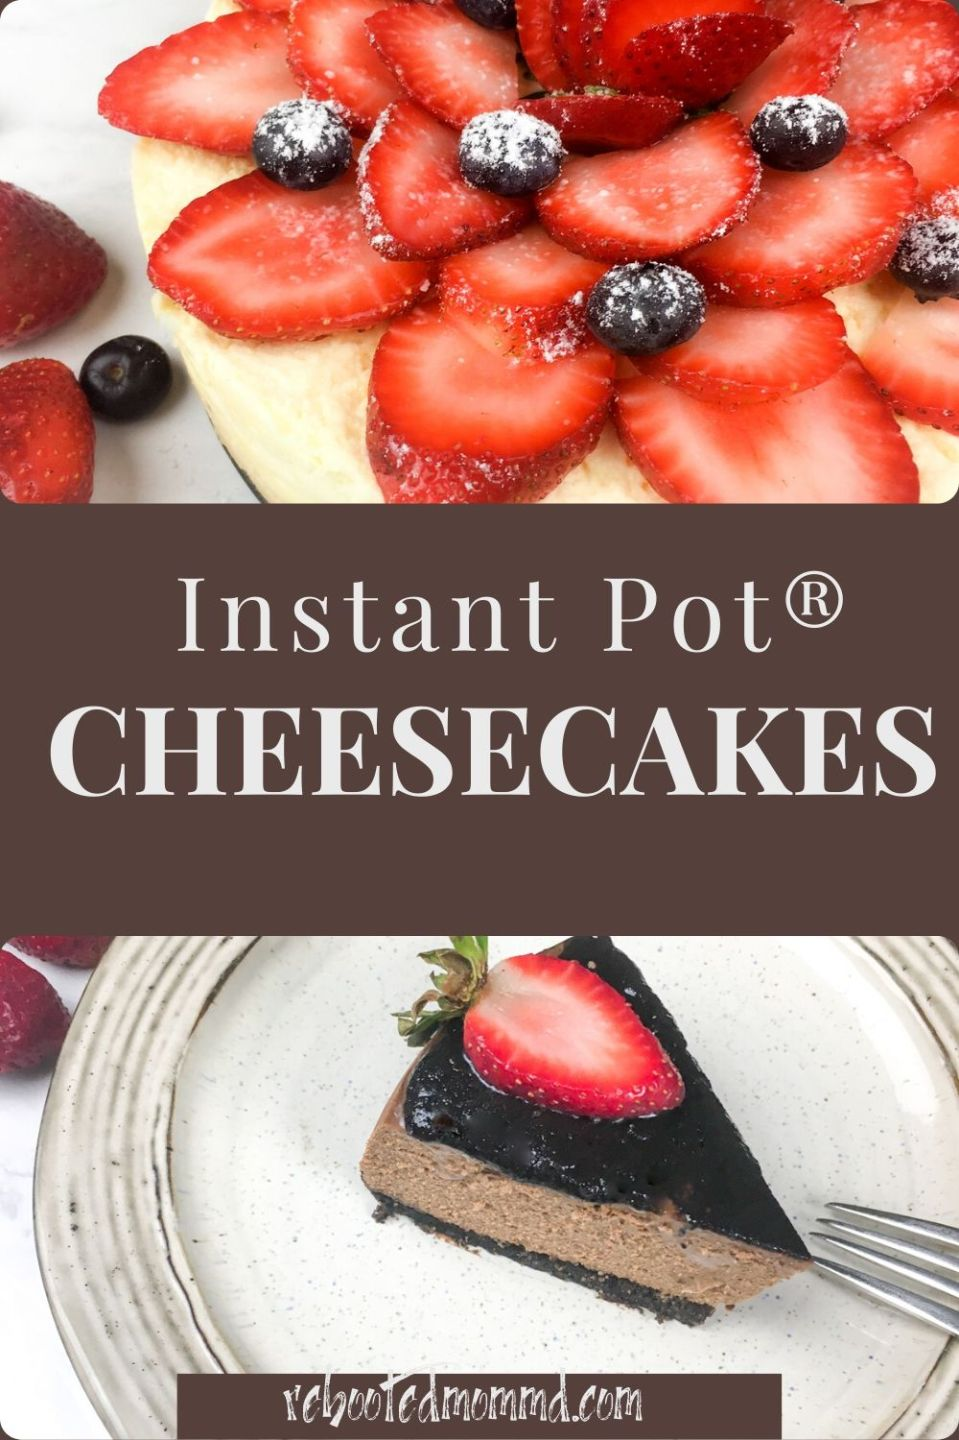 Instant Pot® Cheesecakes